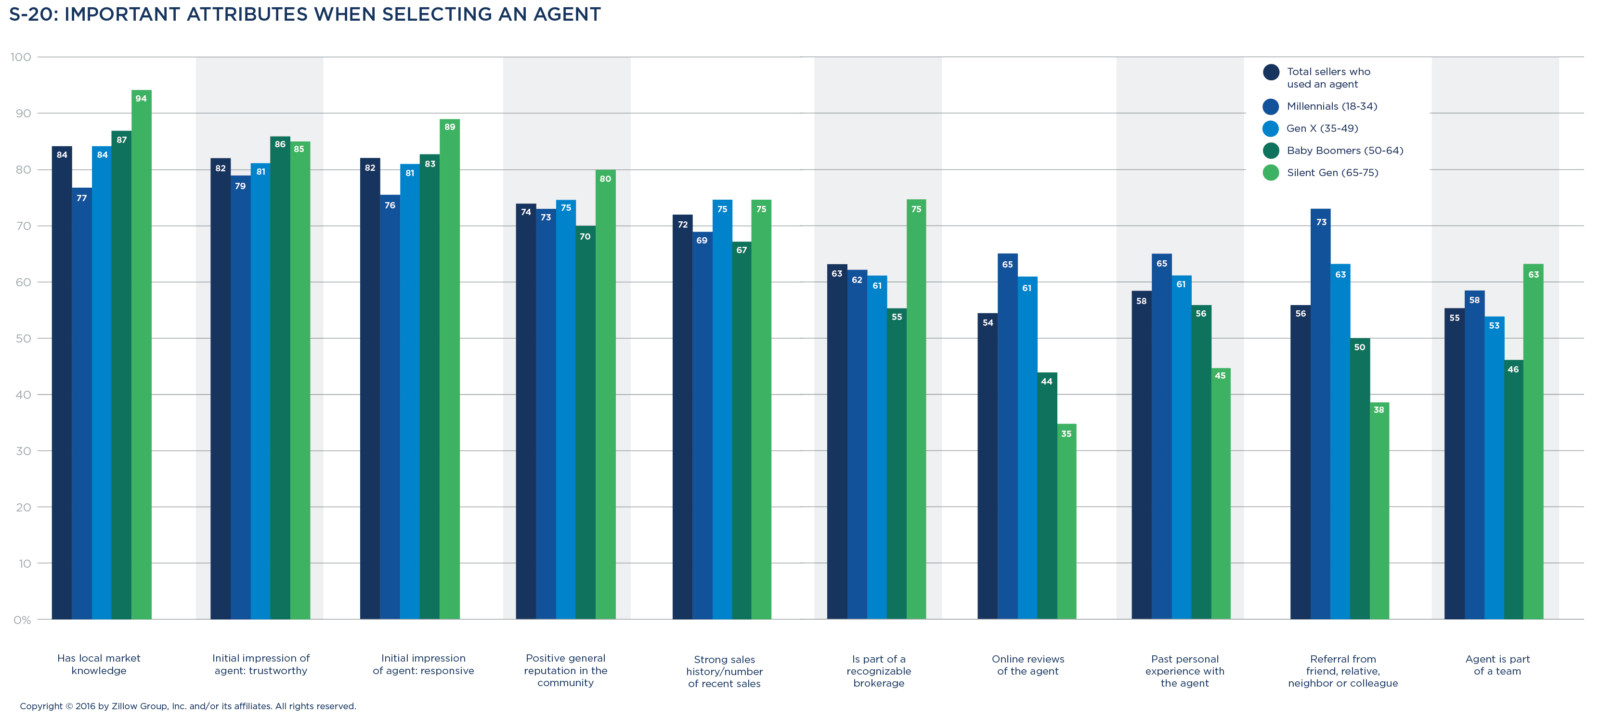 Additionally, Sellers Place Weight On An Agent's Reputation In The  Neighborhood (74 Percent), A Recent Track Record Of Successful Sale  Closings (72 Percent)